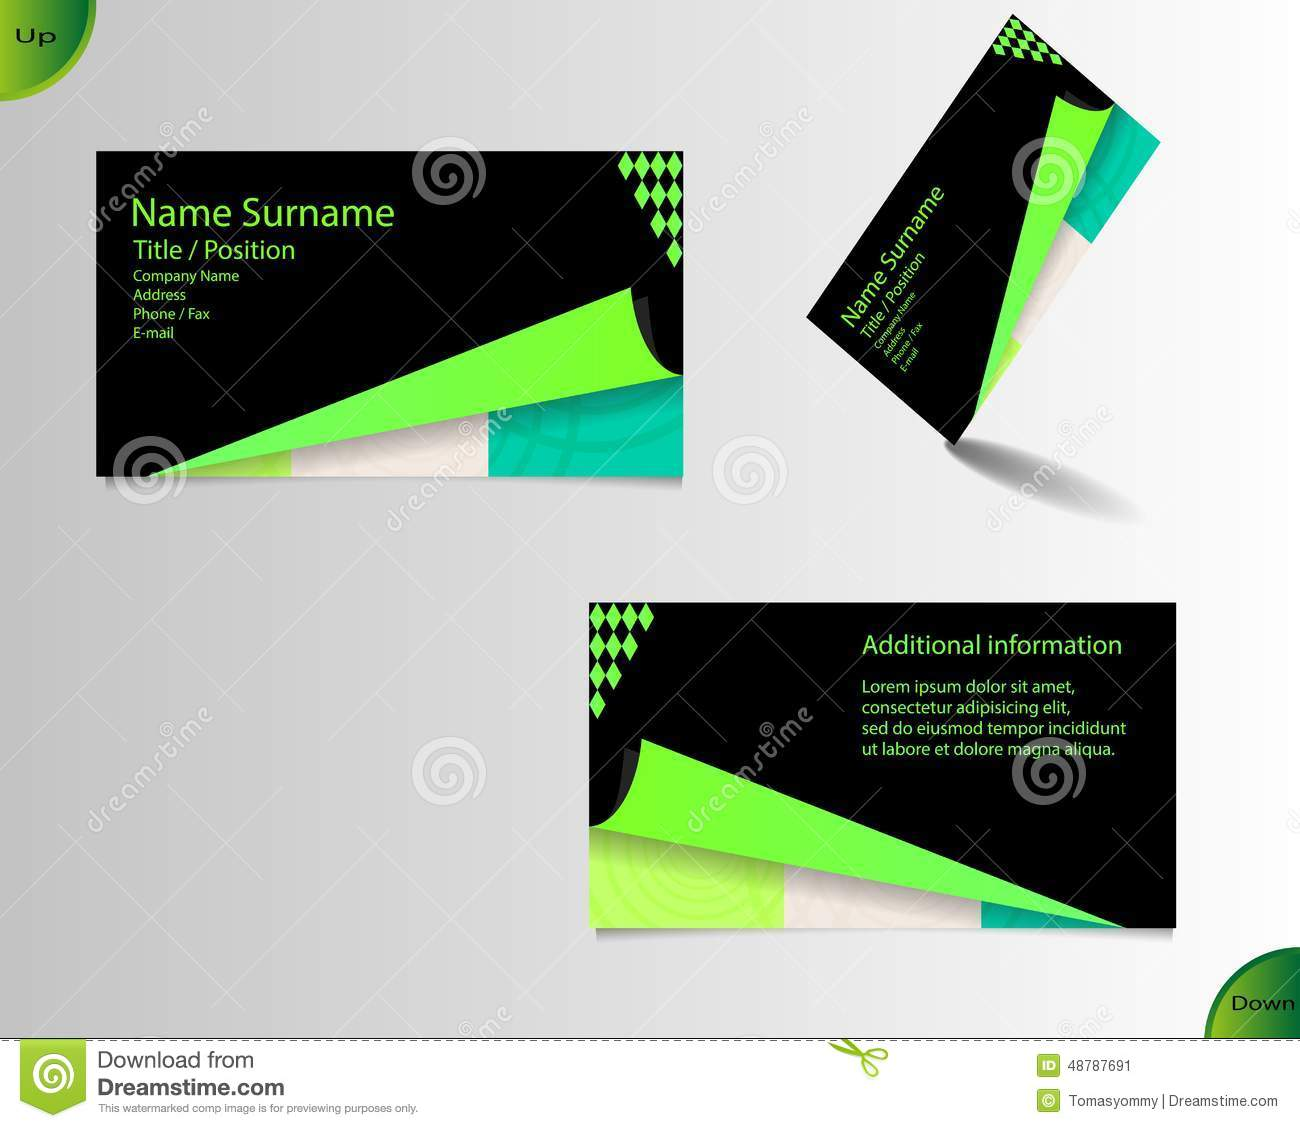 Business card layout stock vector. Illustration of folded - 48787691